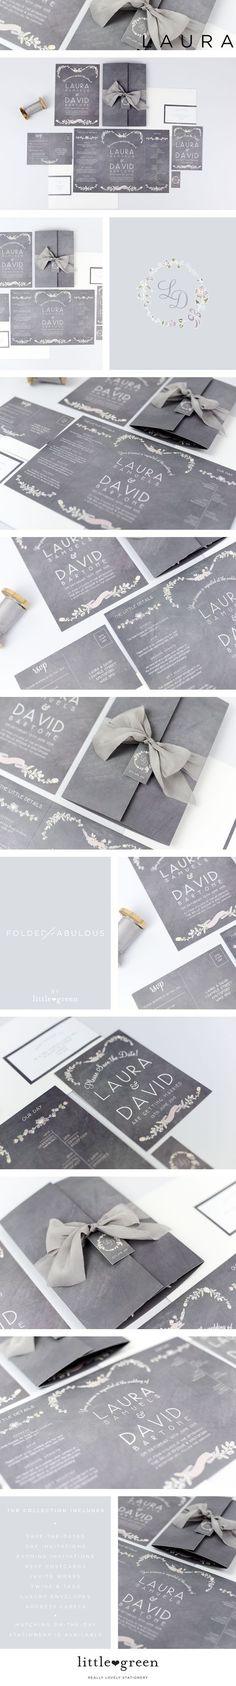 Wedding Invitations - THE LAURA COLLECTION from The Little Green Studio